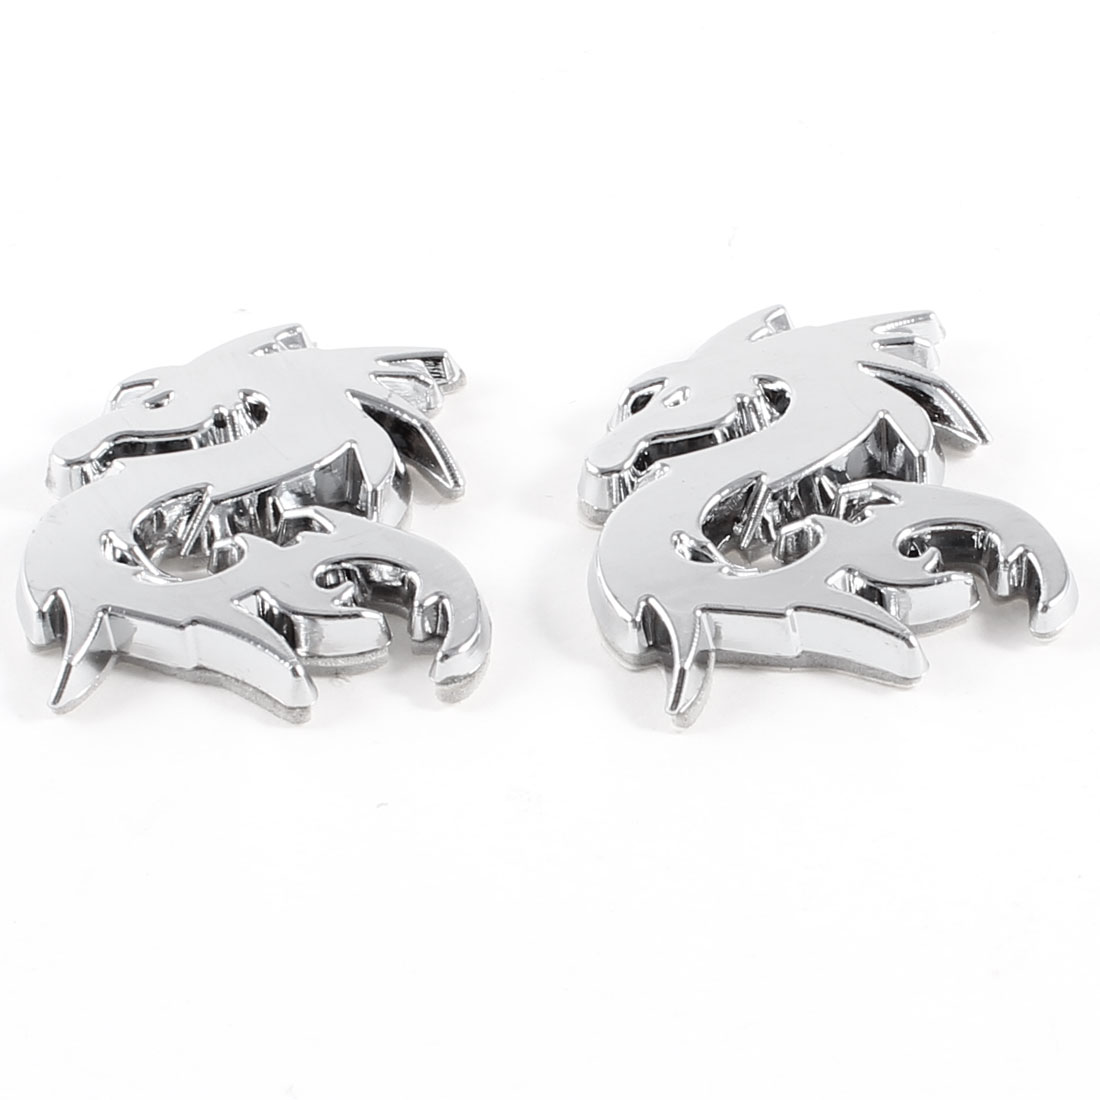 2 Pcs 3D Dragon Shaped Stickers Ornament Silver Tone for Car Vehicles